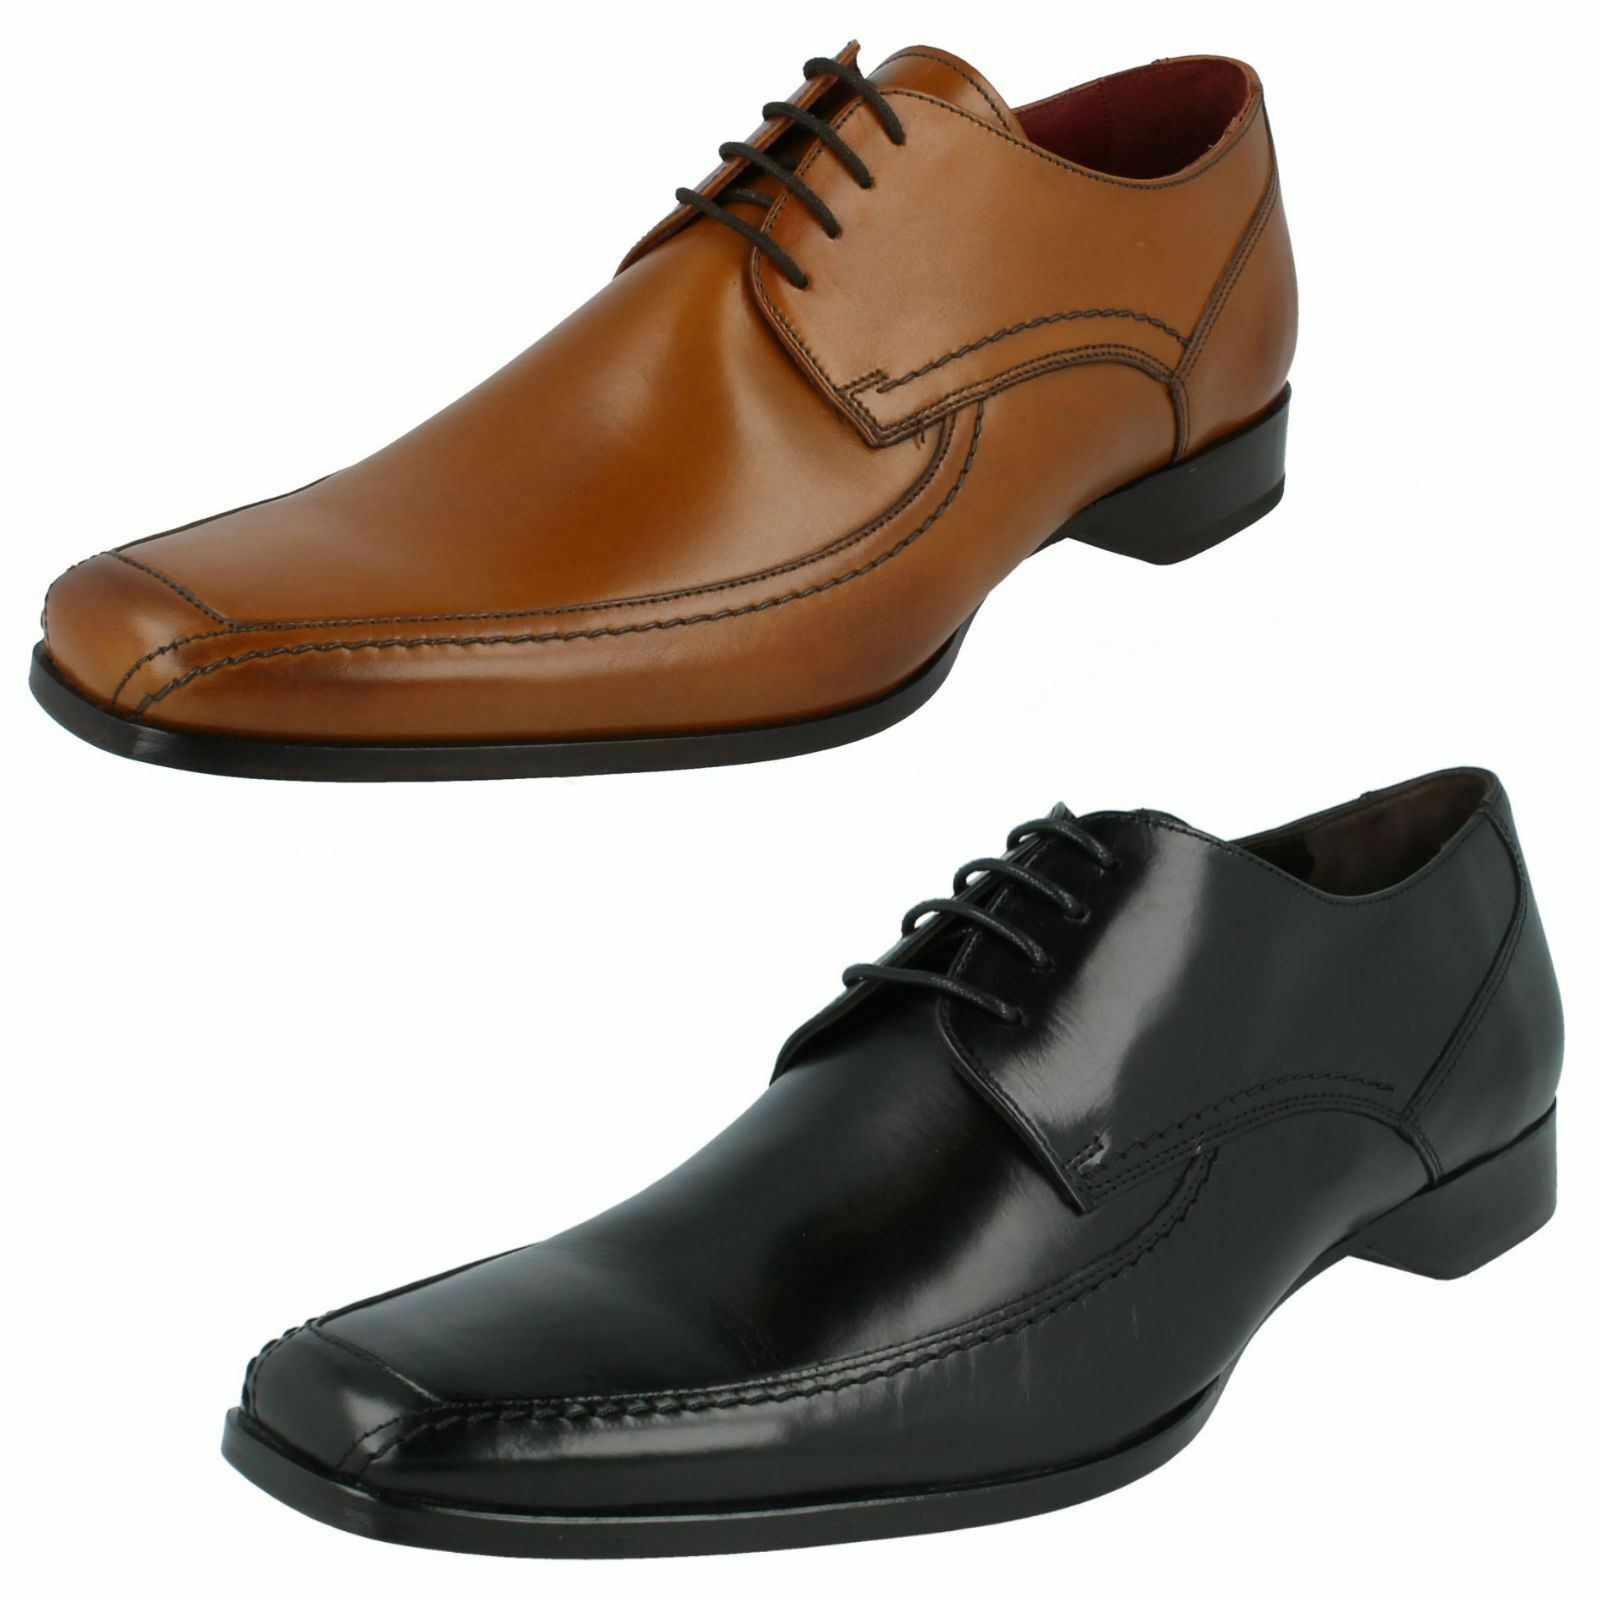 Mens Loake Formal Leder Schuhes - 1369